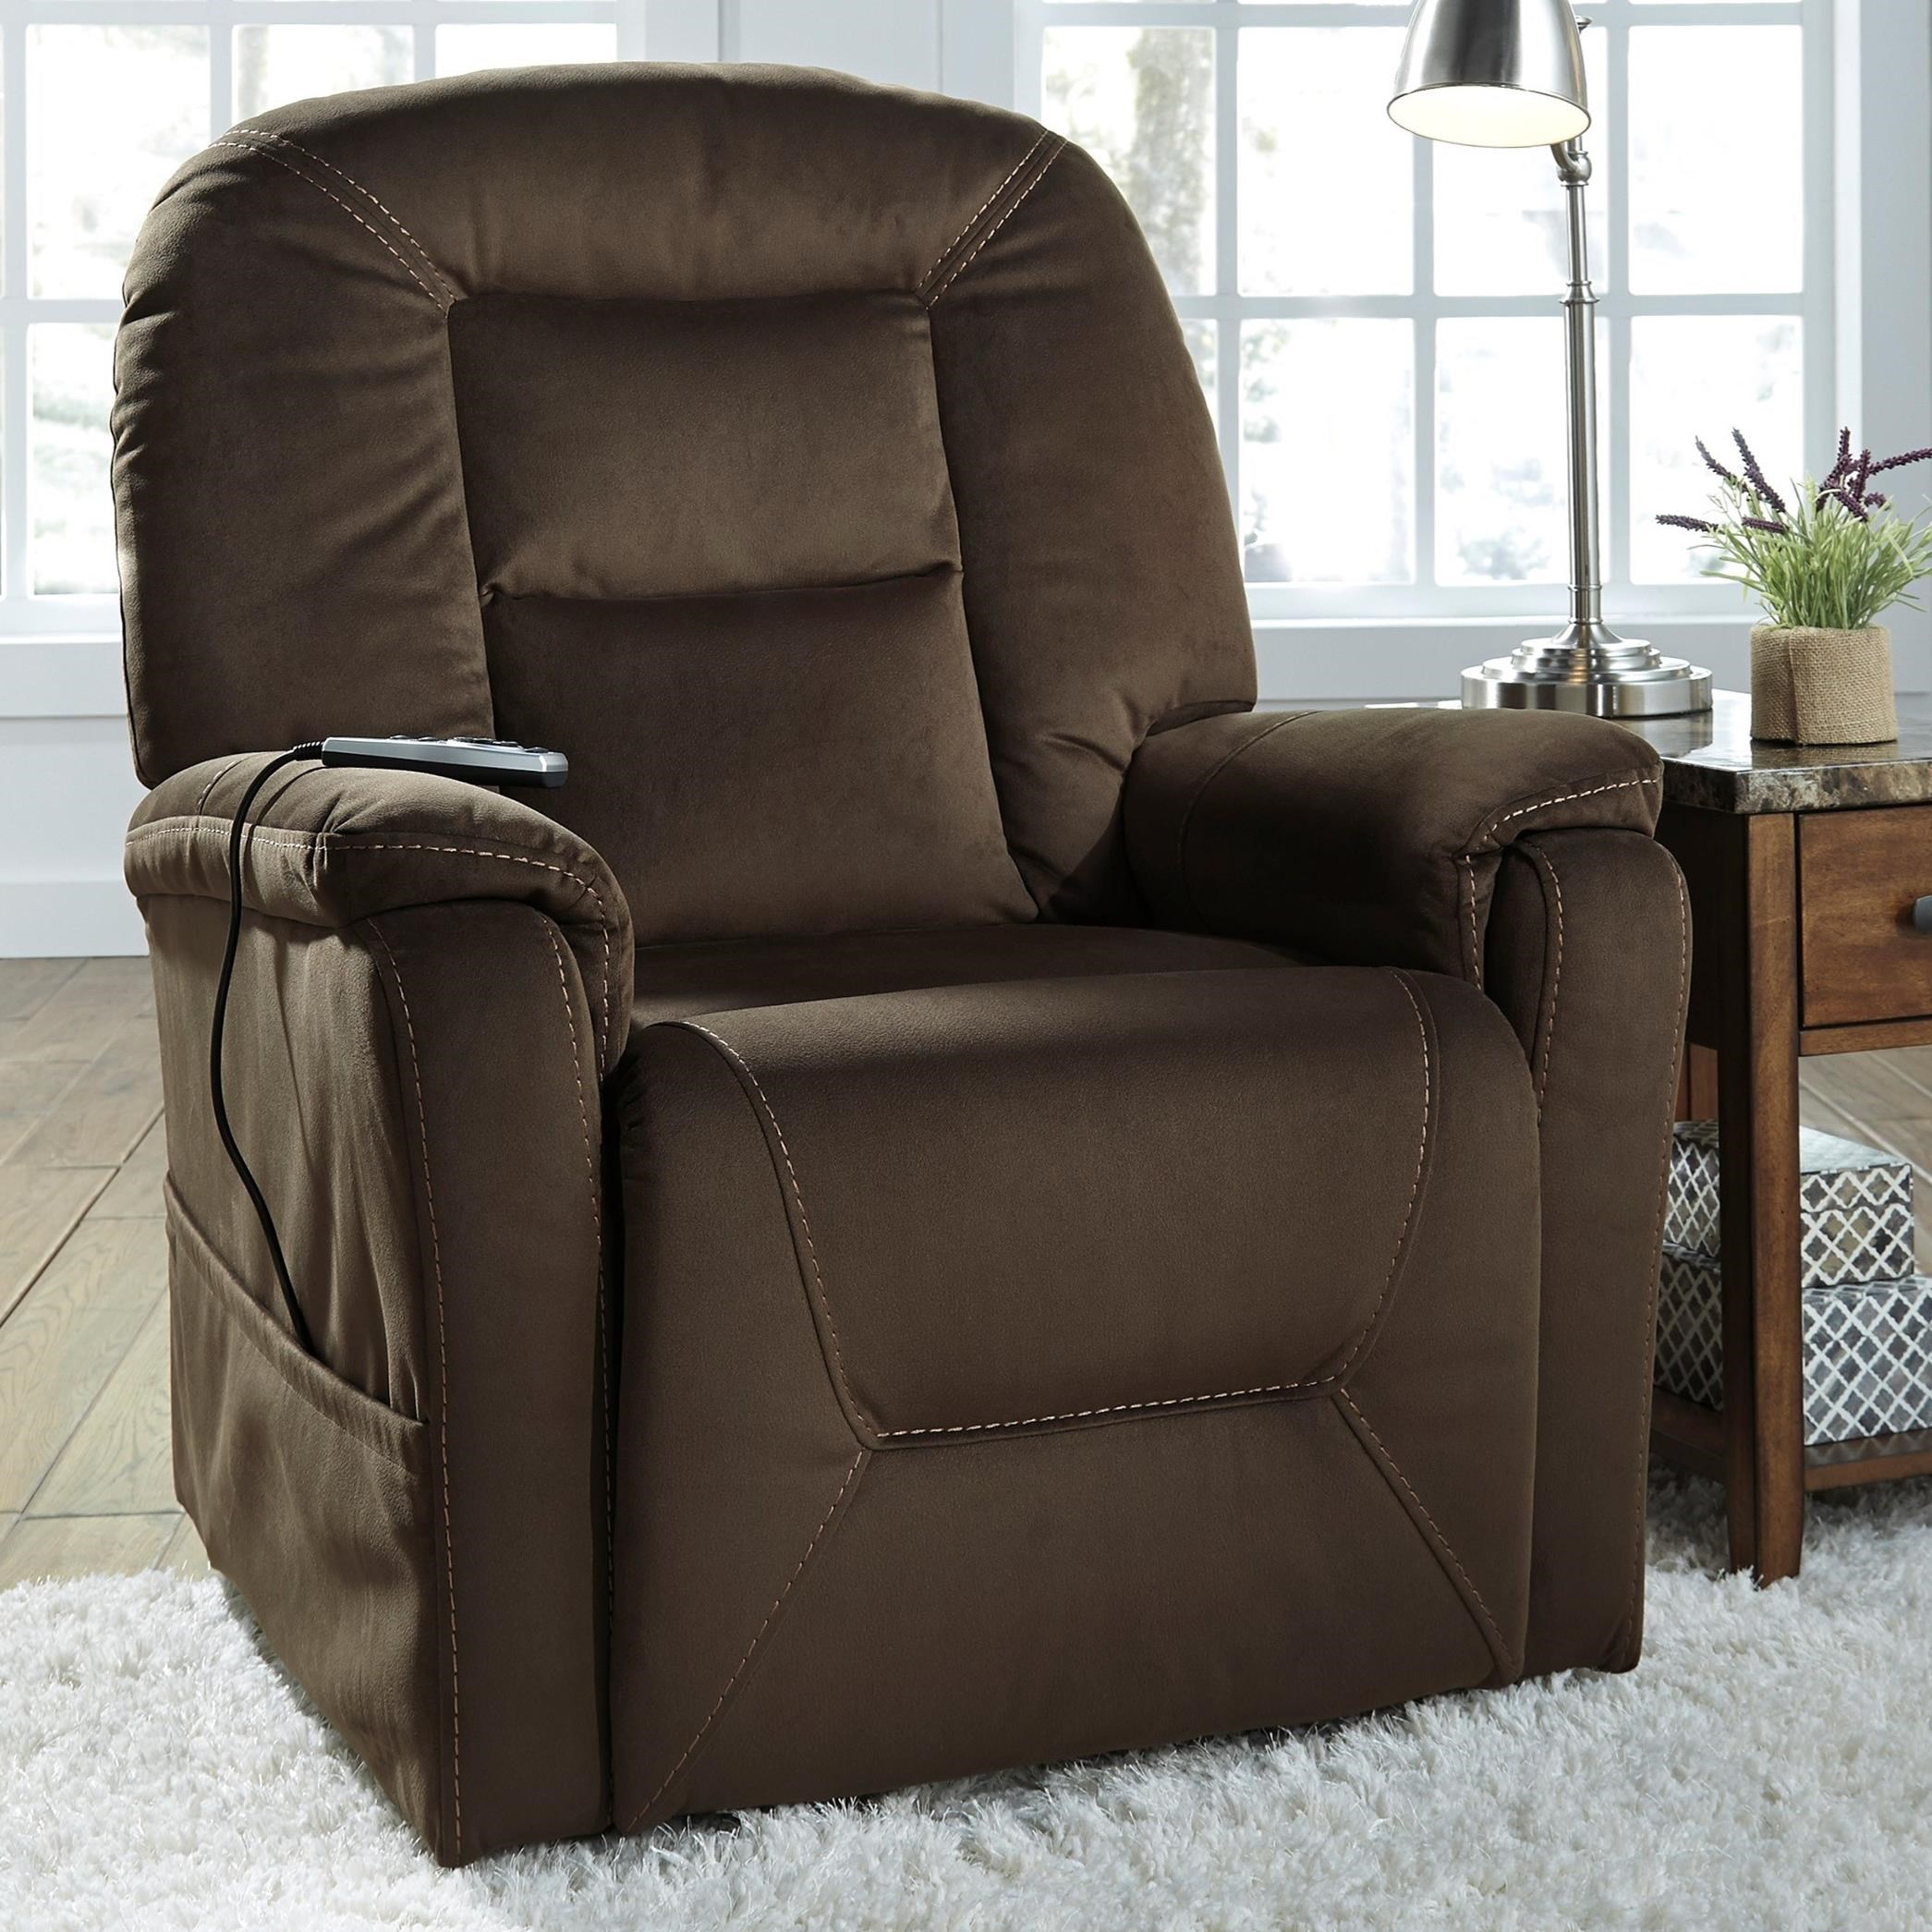 Lift Chairs Recliners Ashley Signature Design Samir Power Lift Recliner With